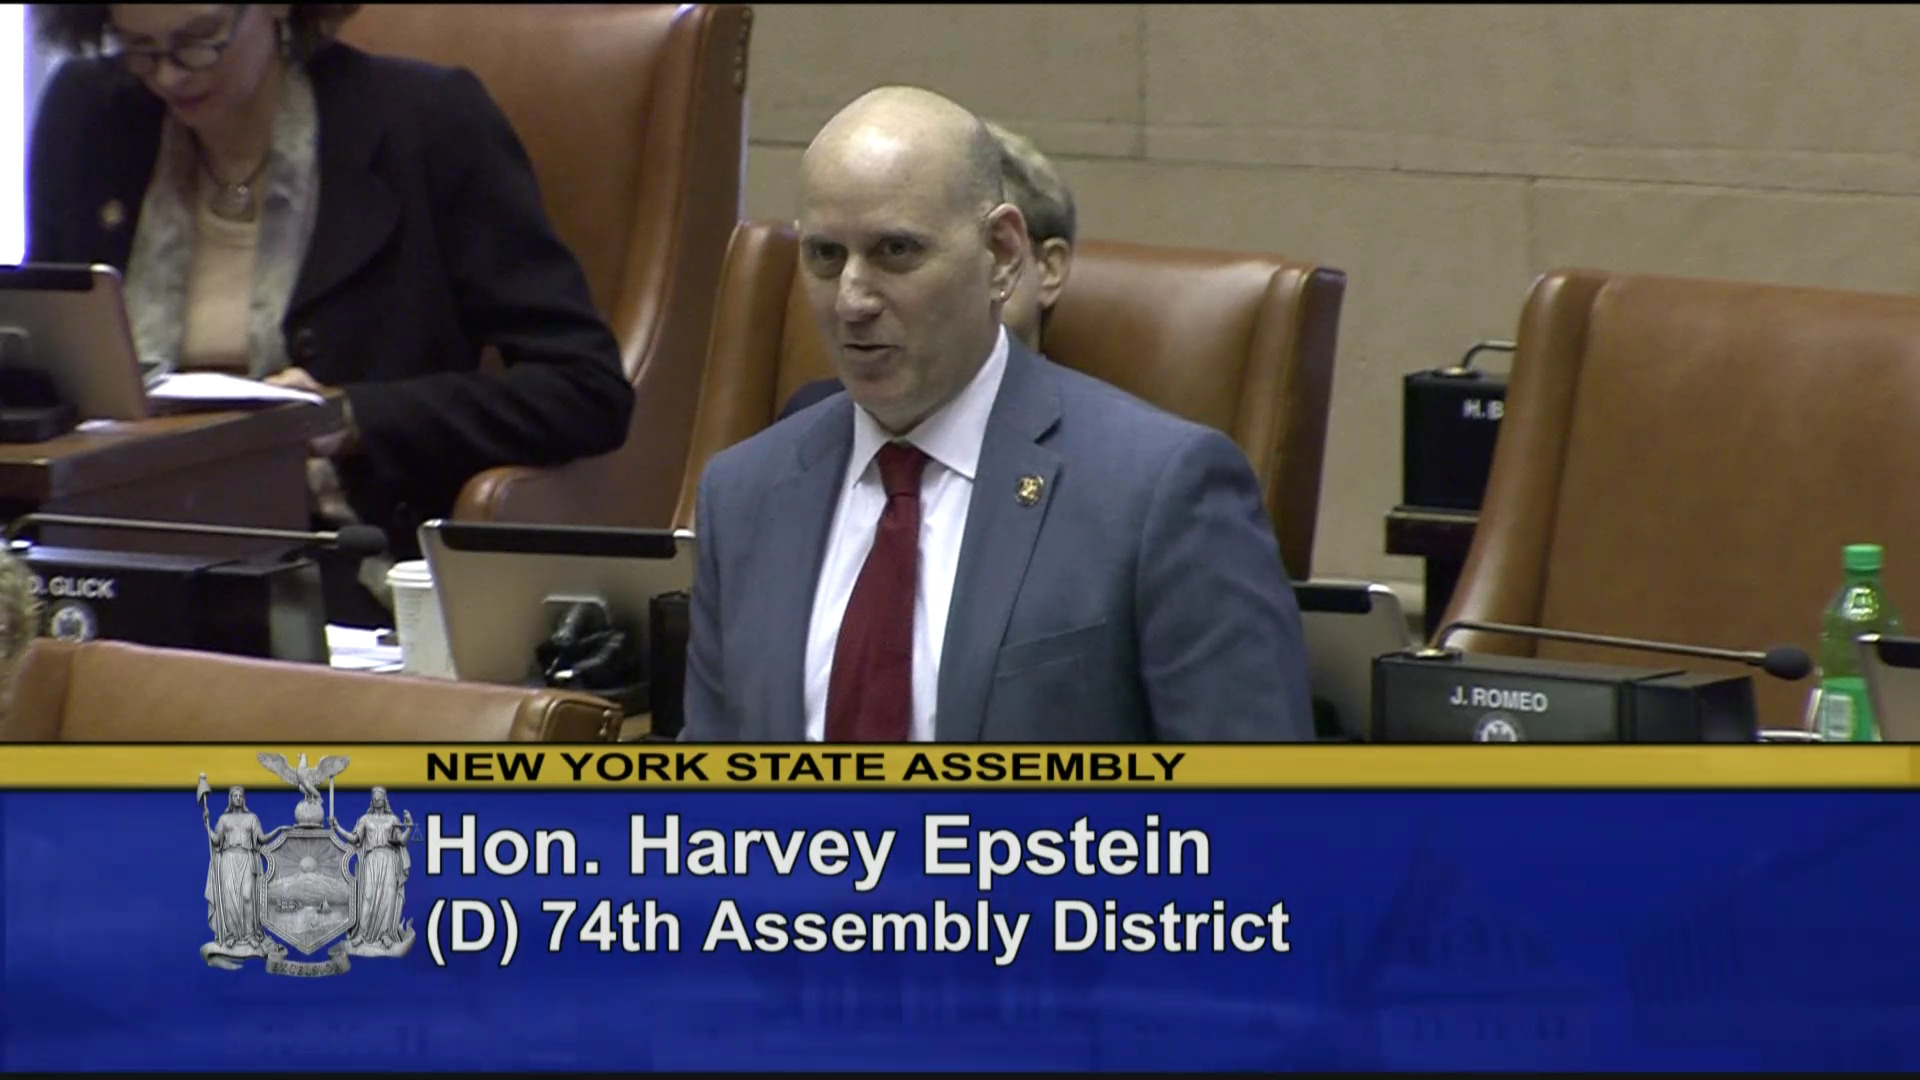 Epstein Introduces West Point Cadet Brian Patterson to Assembly Chamber